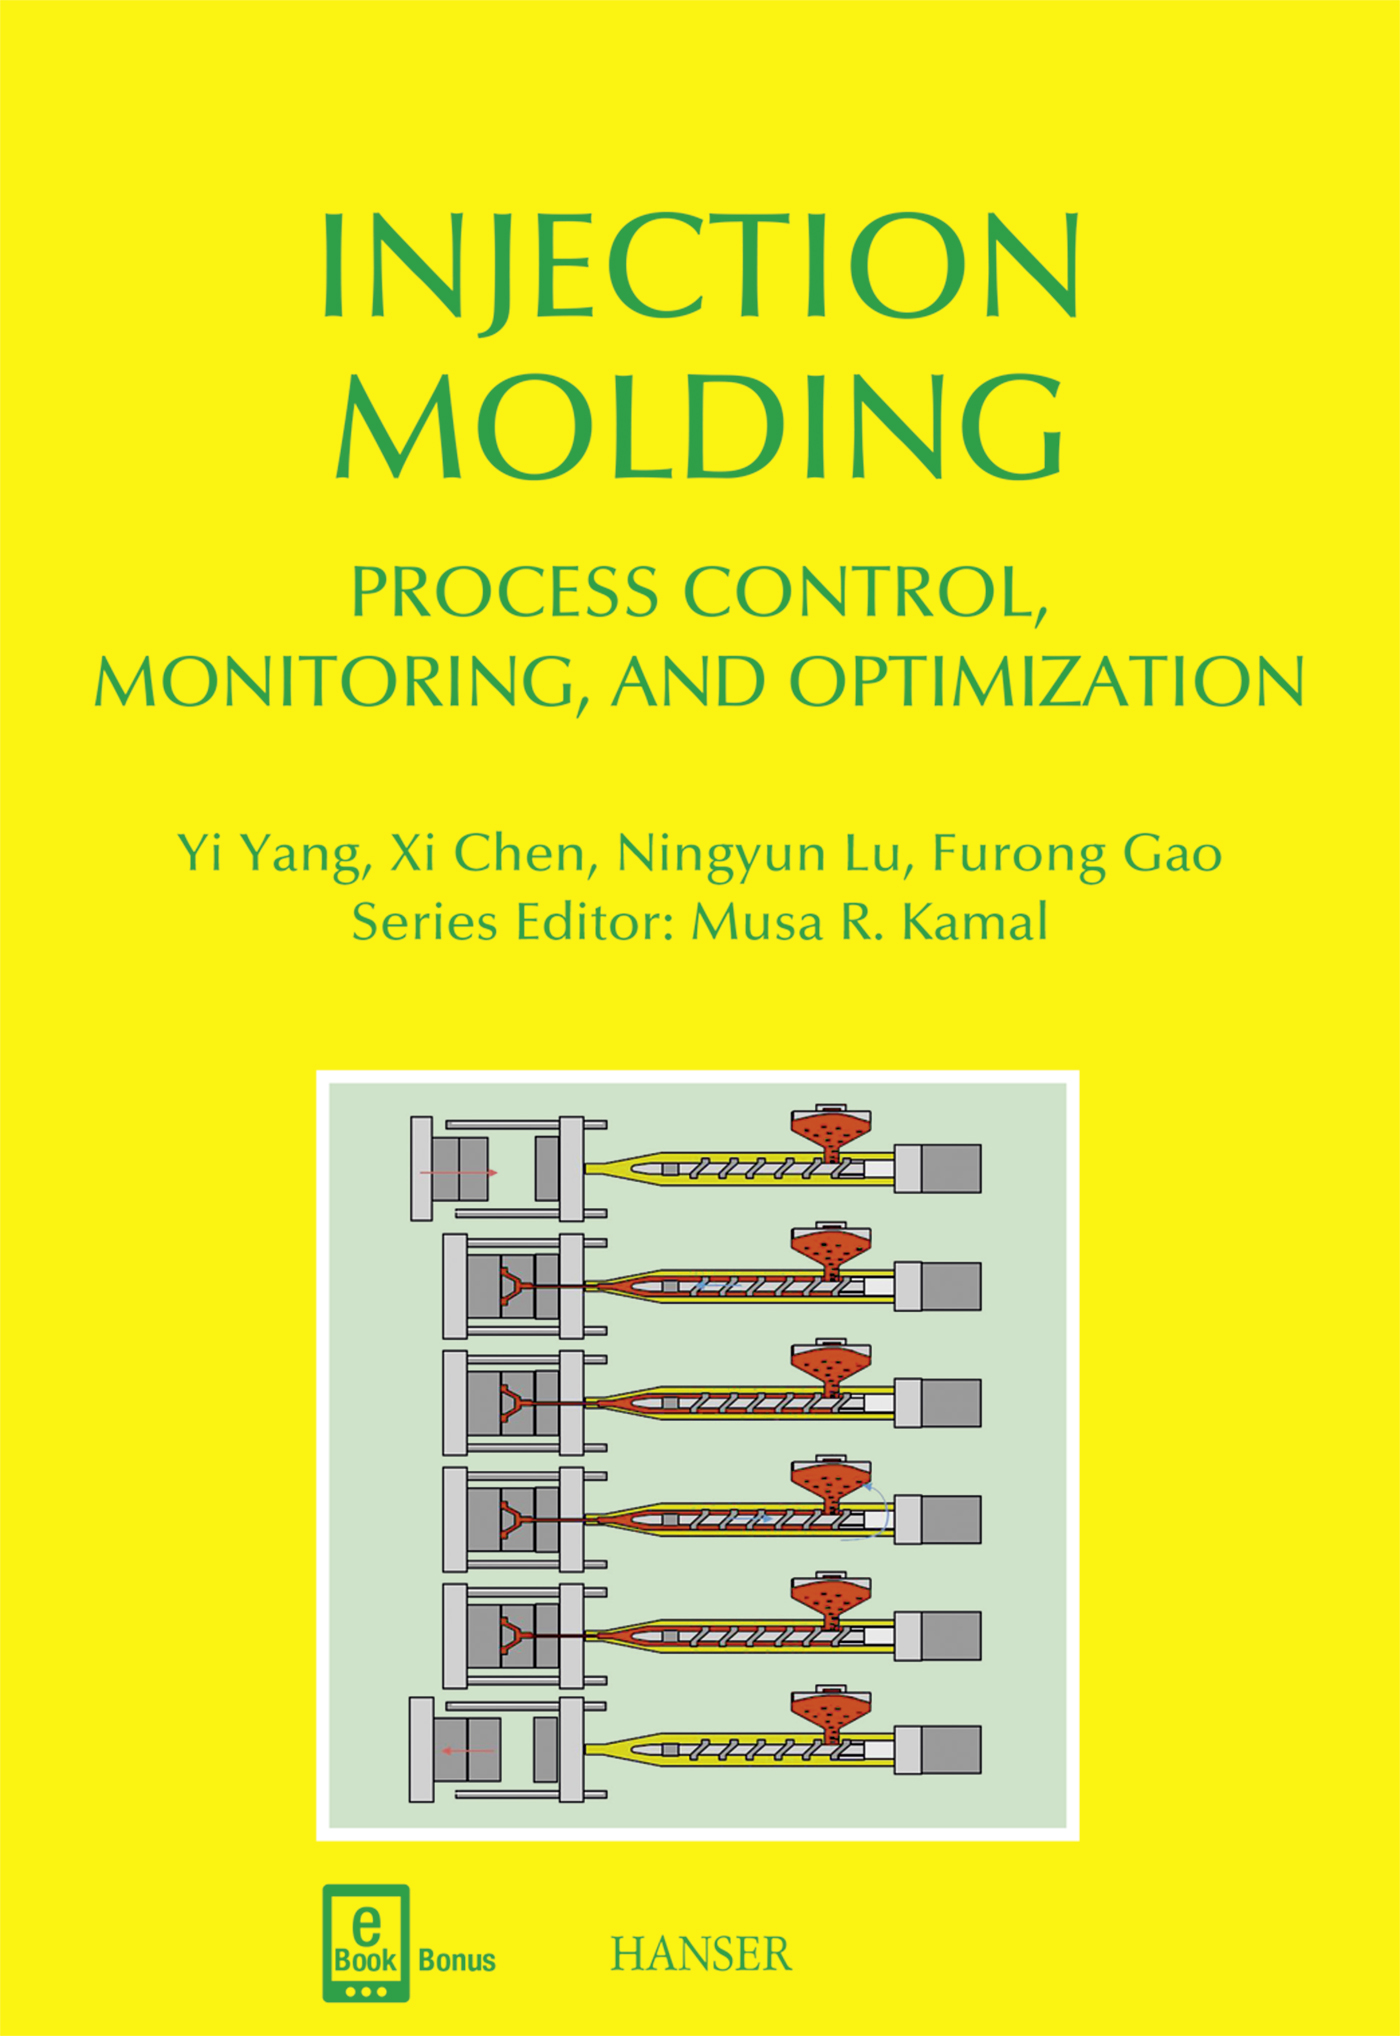 Yang, Chen, Lu, Gao, Injection Molding Process Control, Monitoring, and Optimization, 978-1-56990-592-0